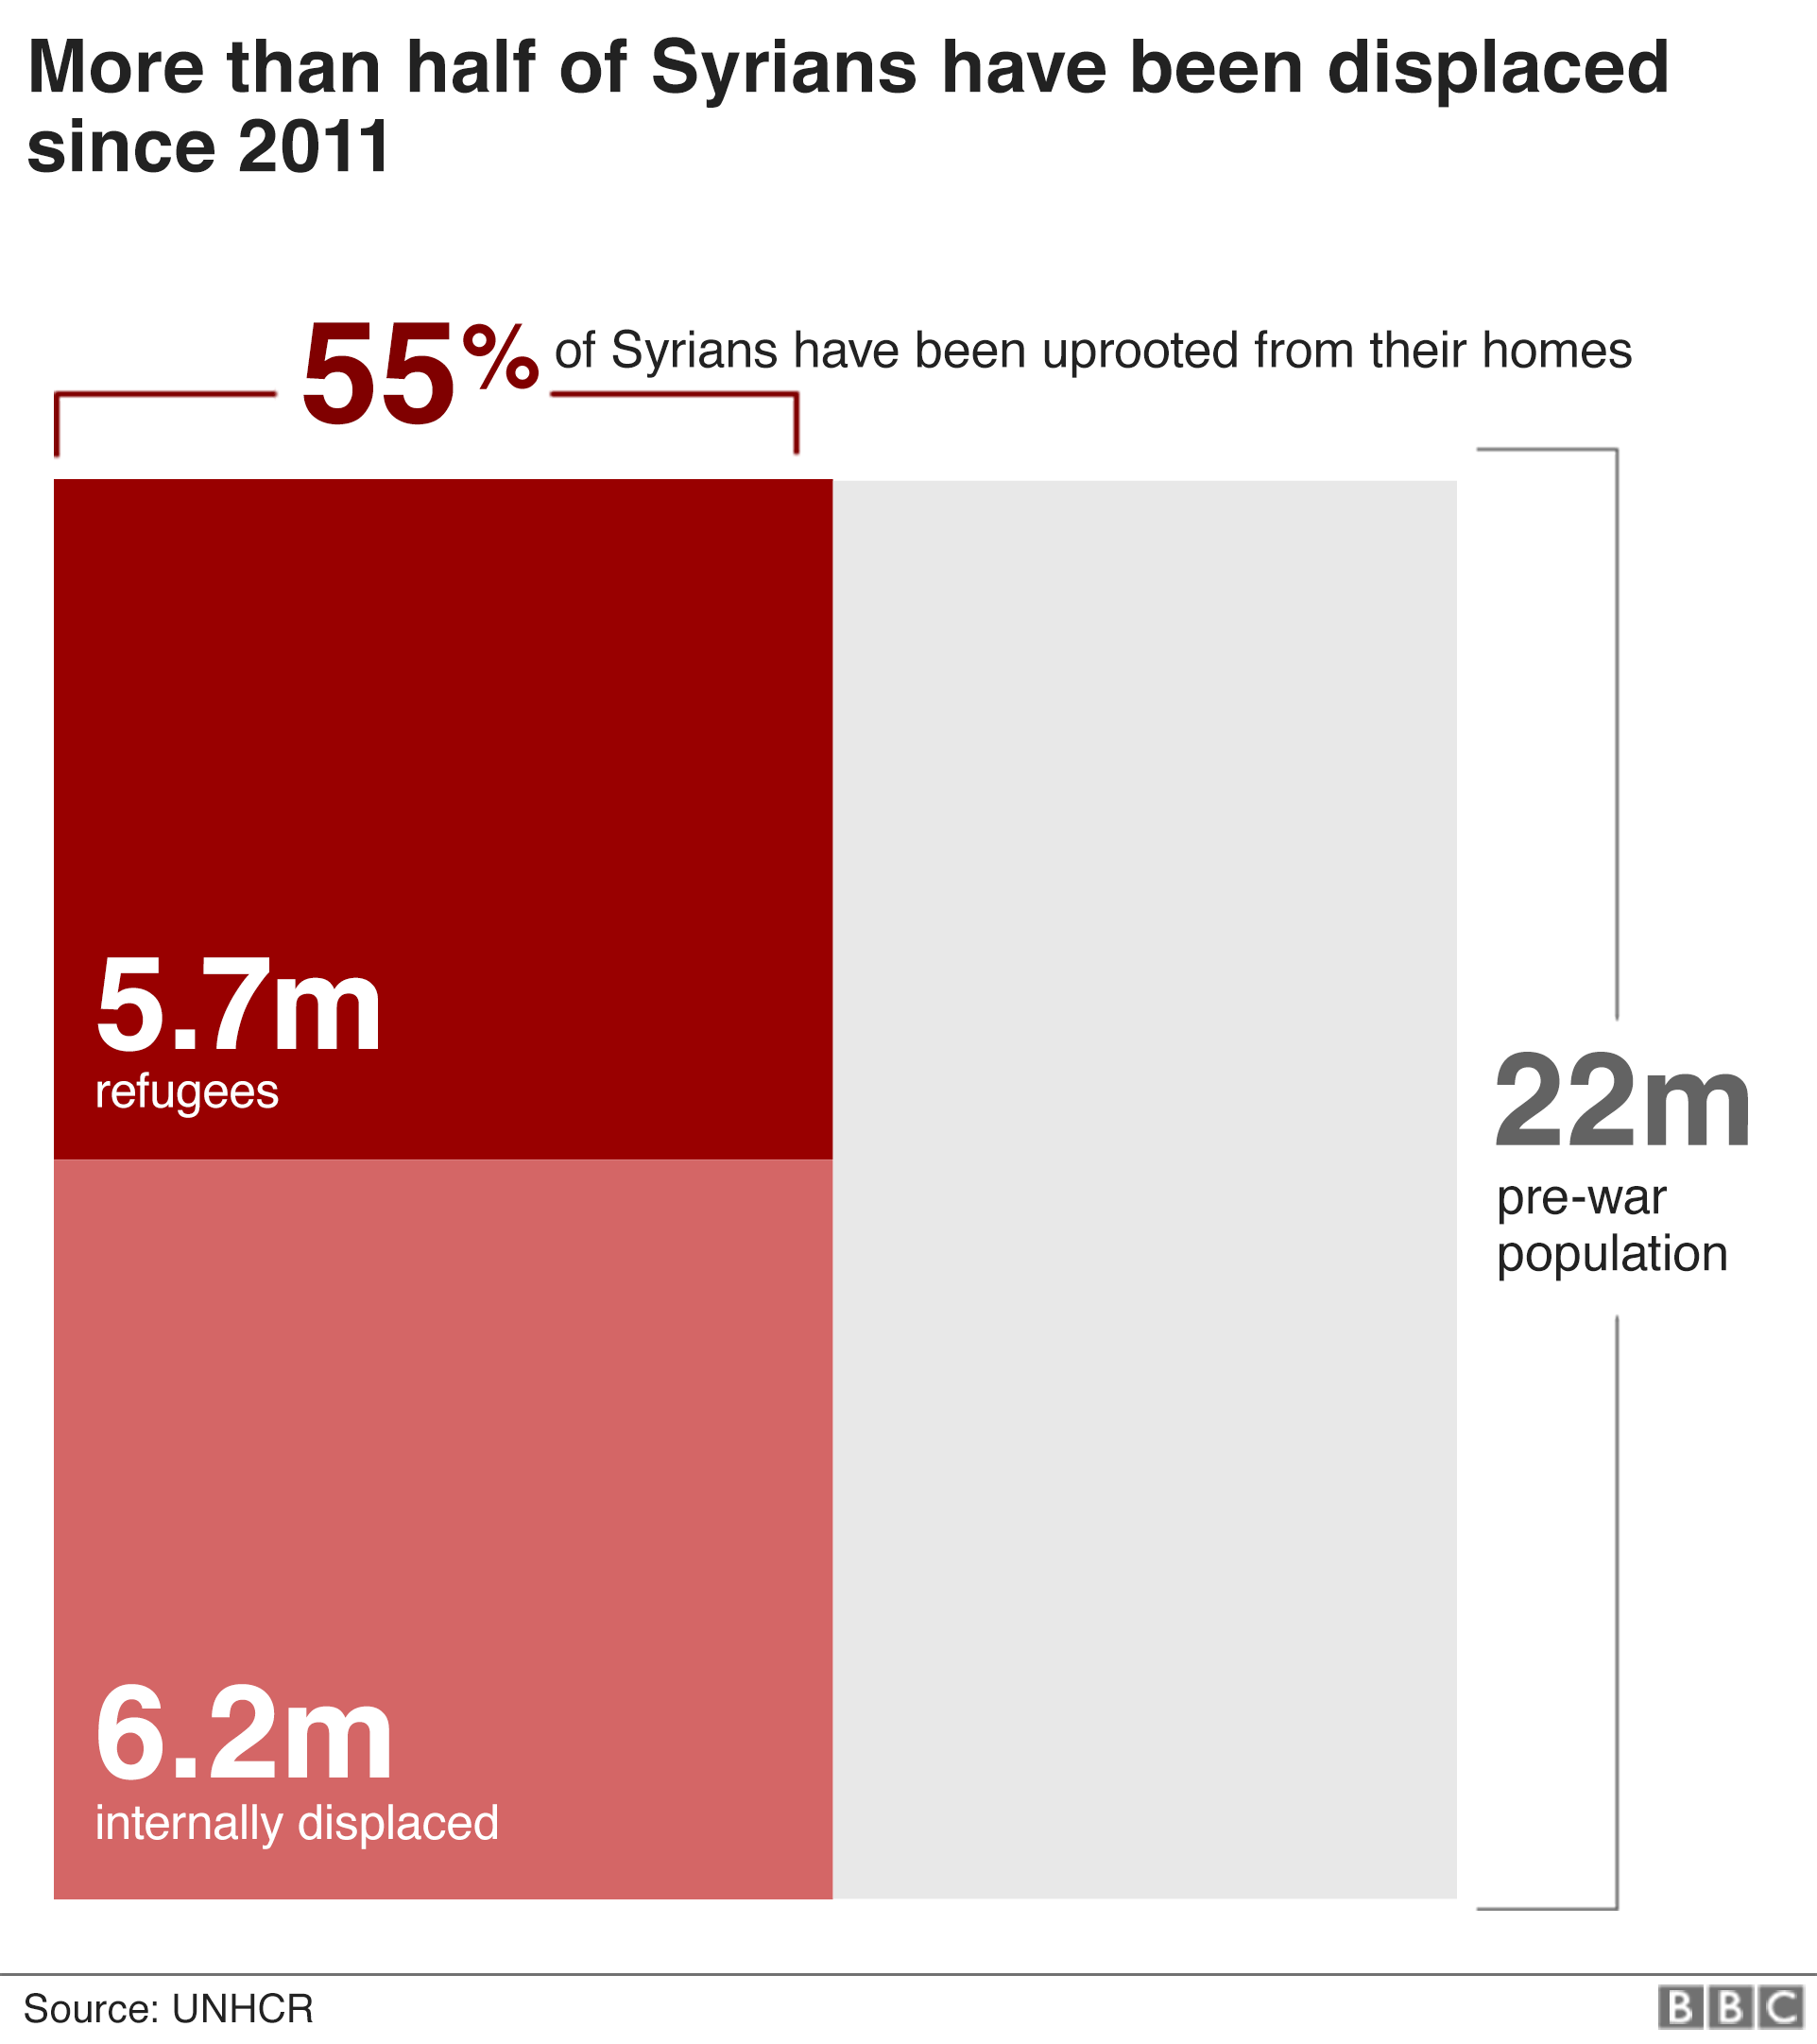 Chart showing 55% of Syrians have been uprooted from their homes